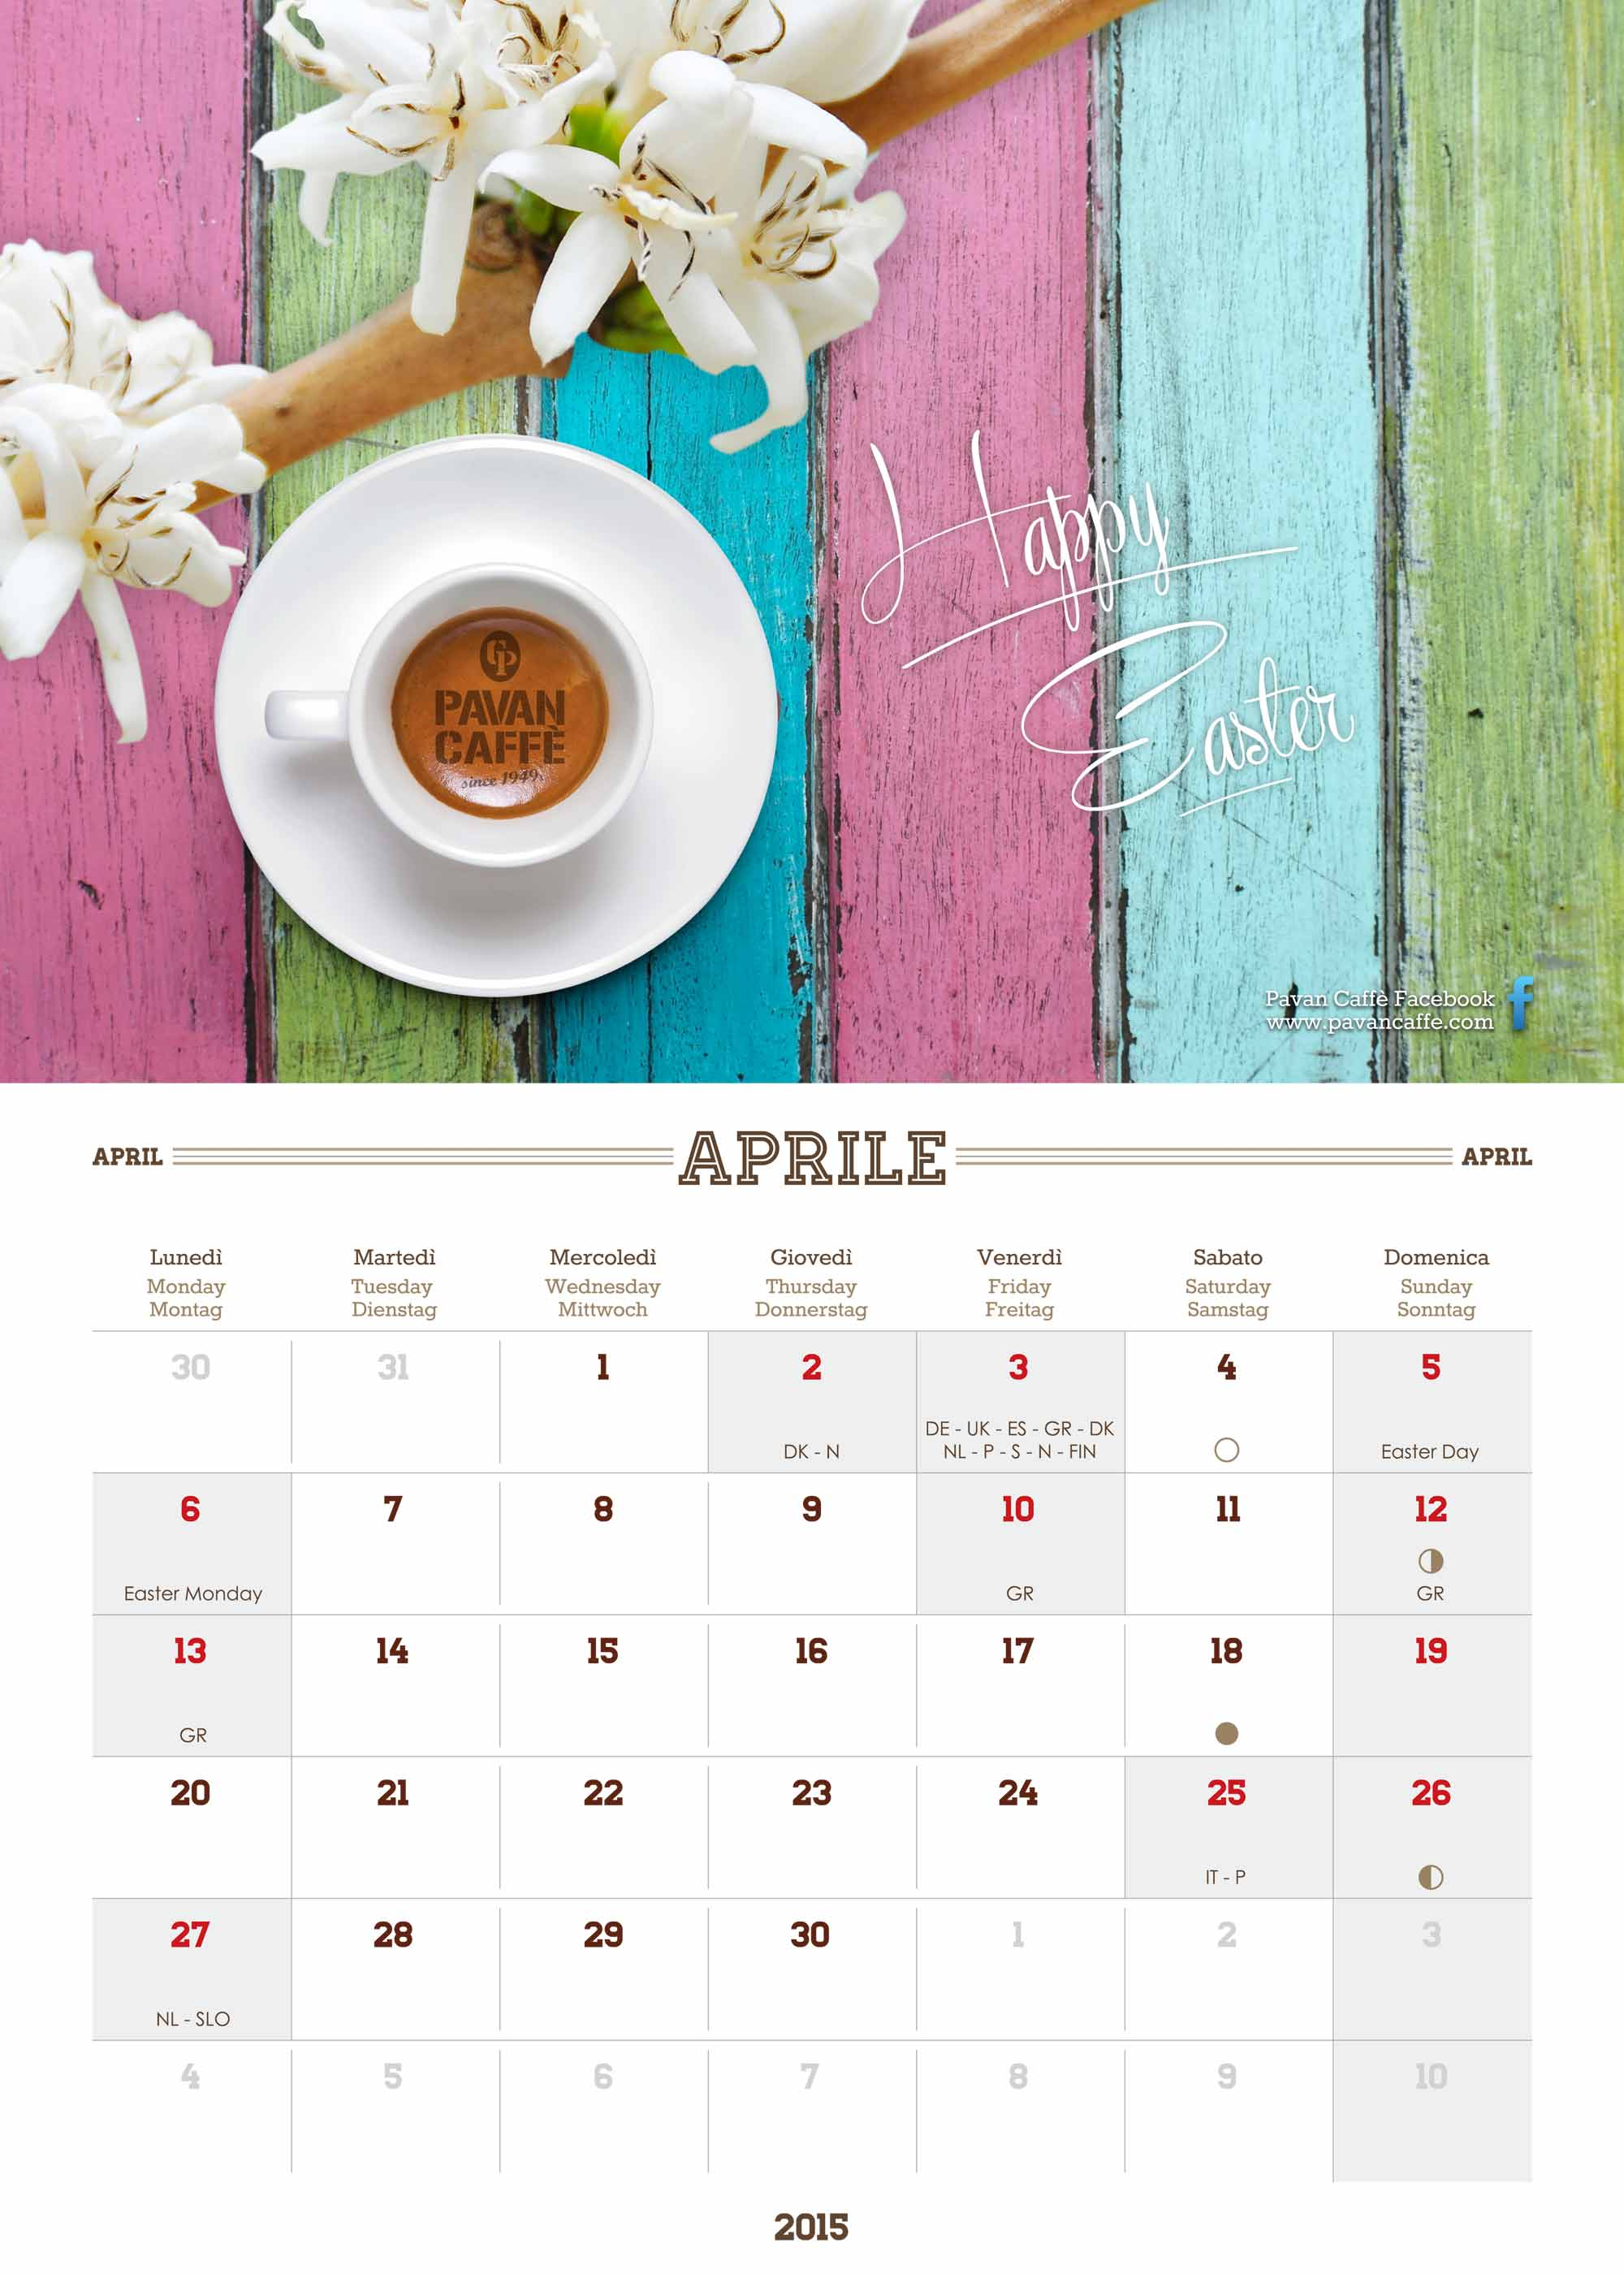 Pavan Caffè 2015 Kalender April